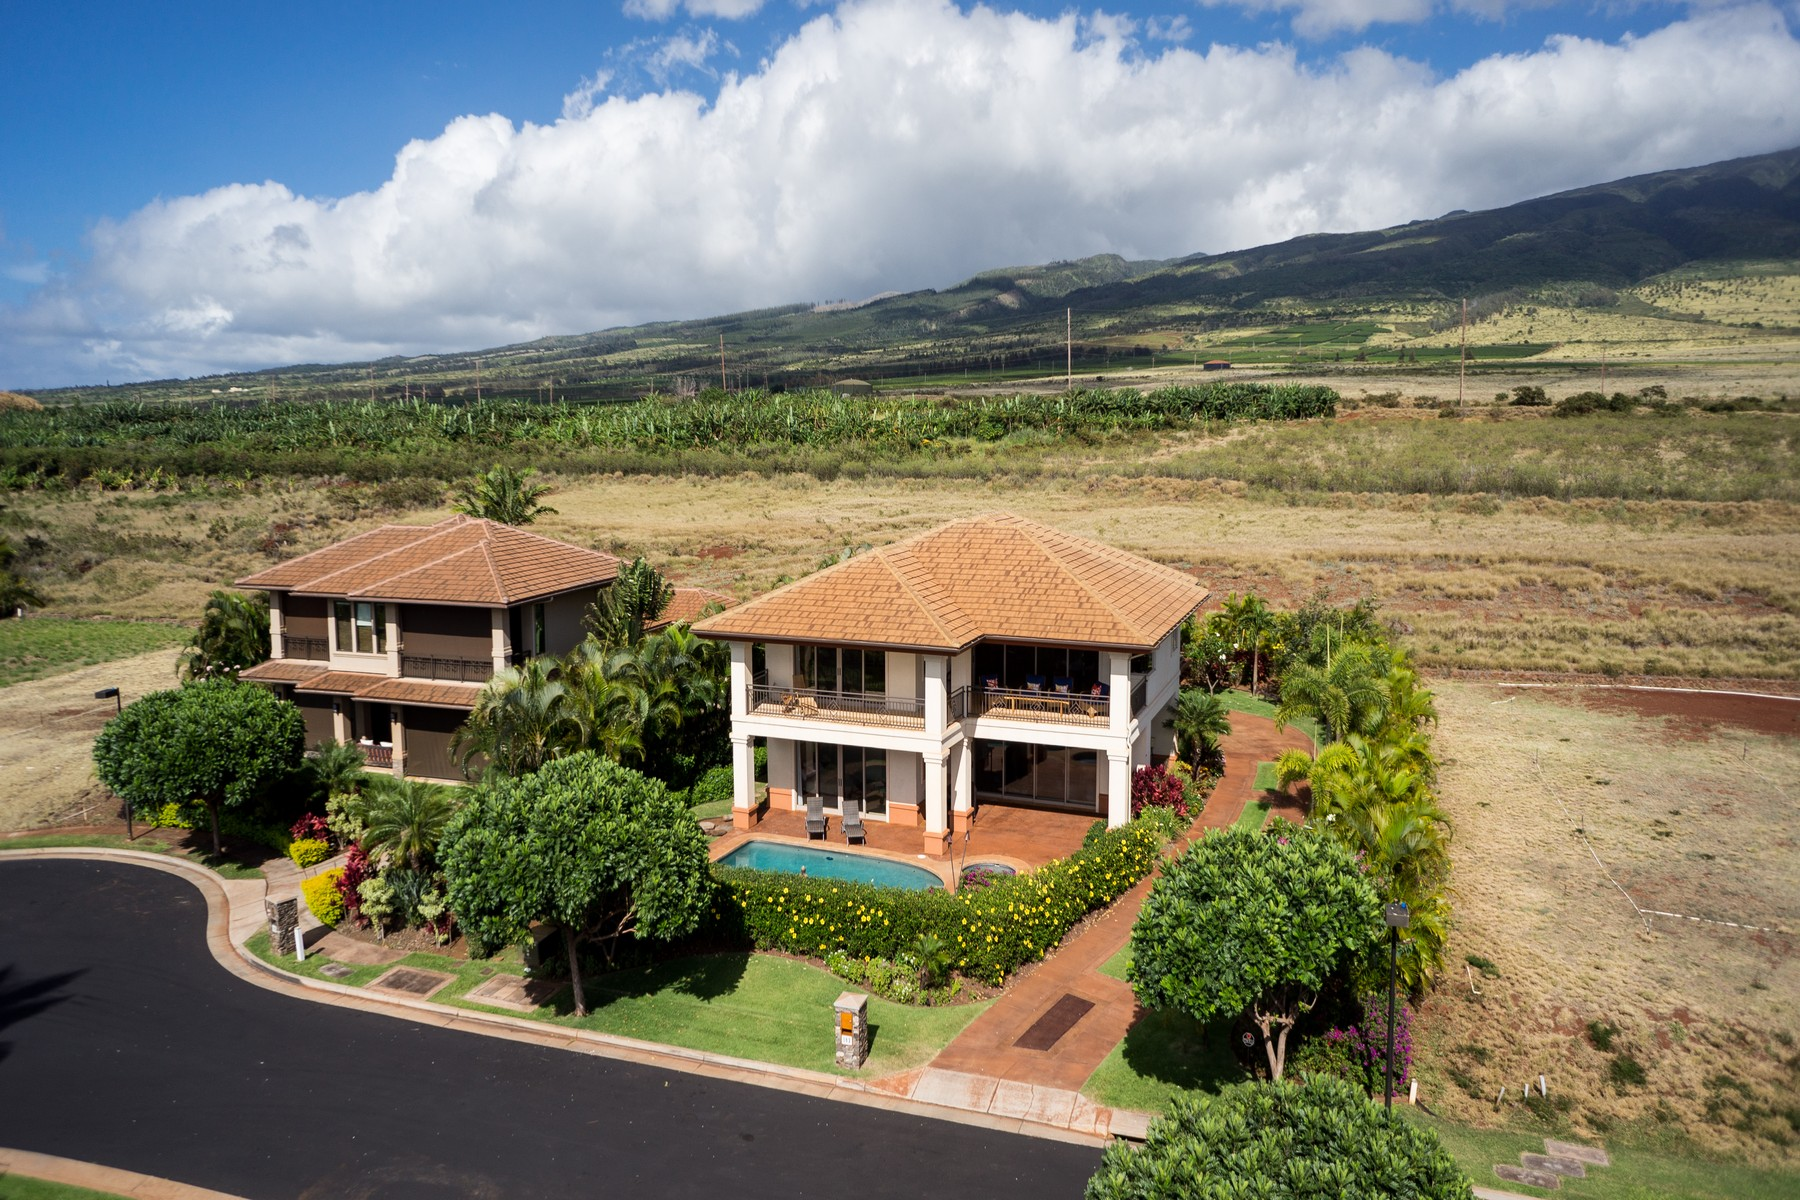 Single Family Home for Sale at Ka'anapali Resort Relaxed, Island Style Living 183 Welau Way Lahaina, Hawaii 96761 United States